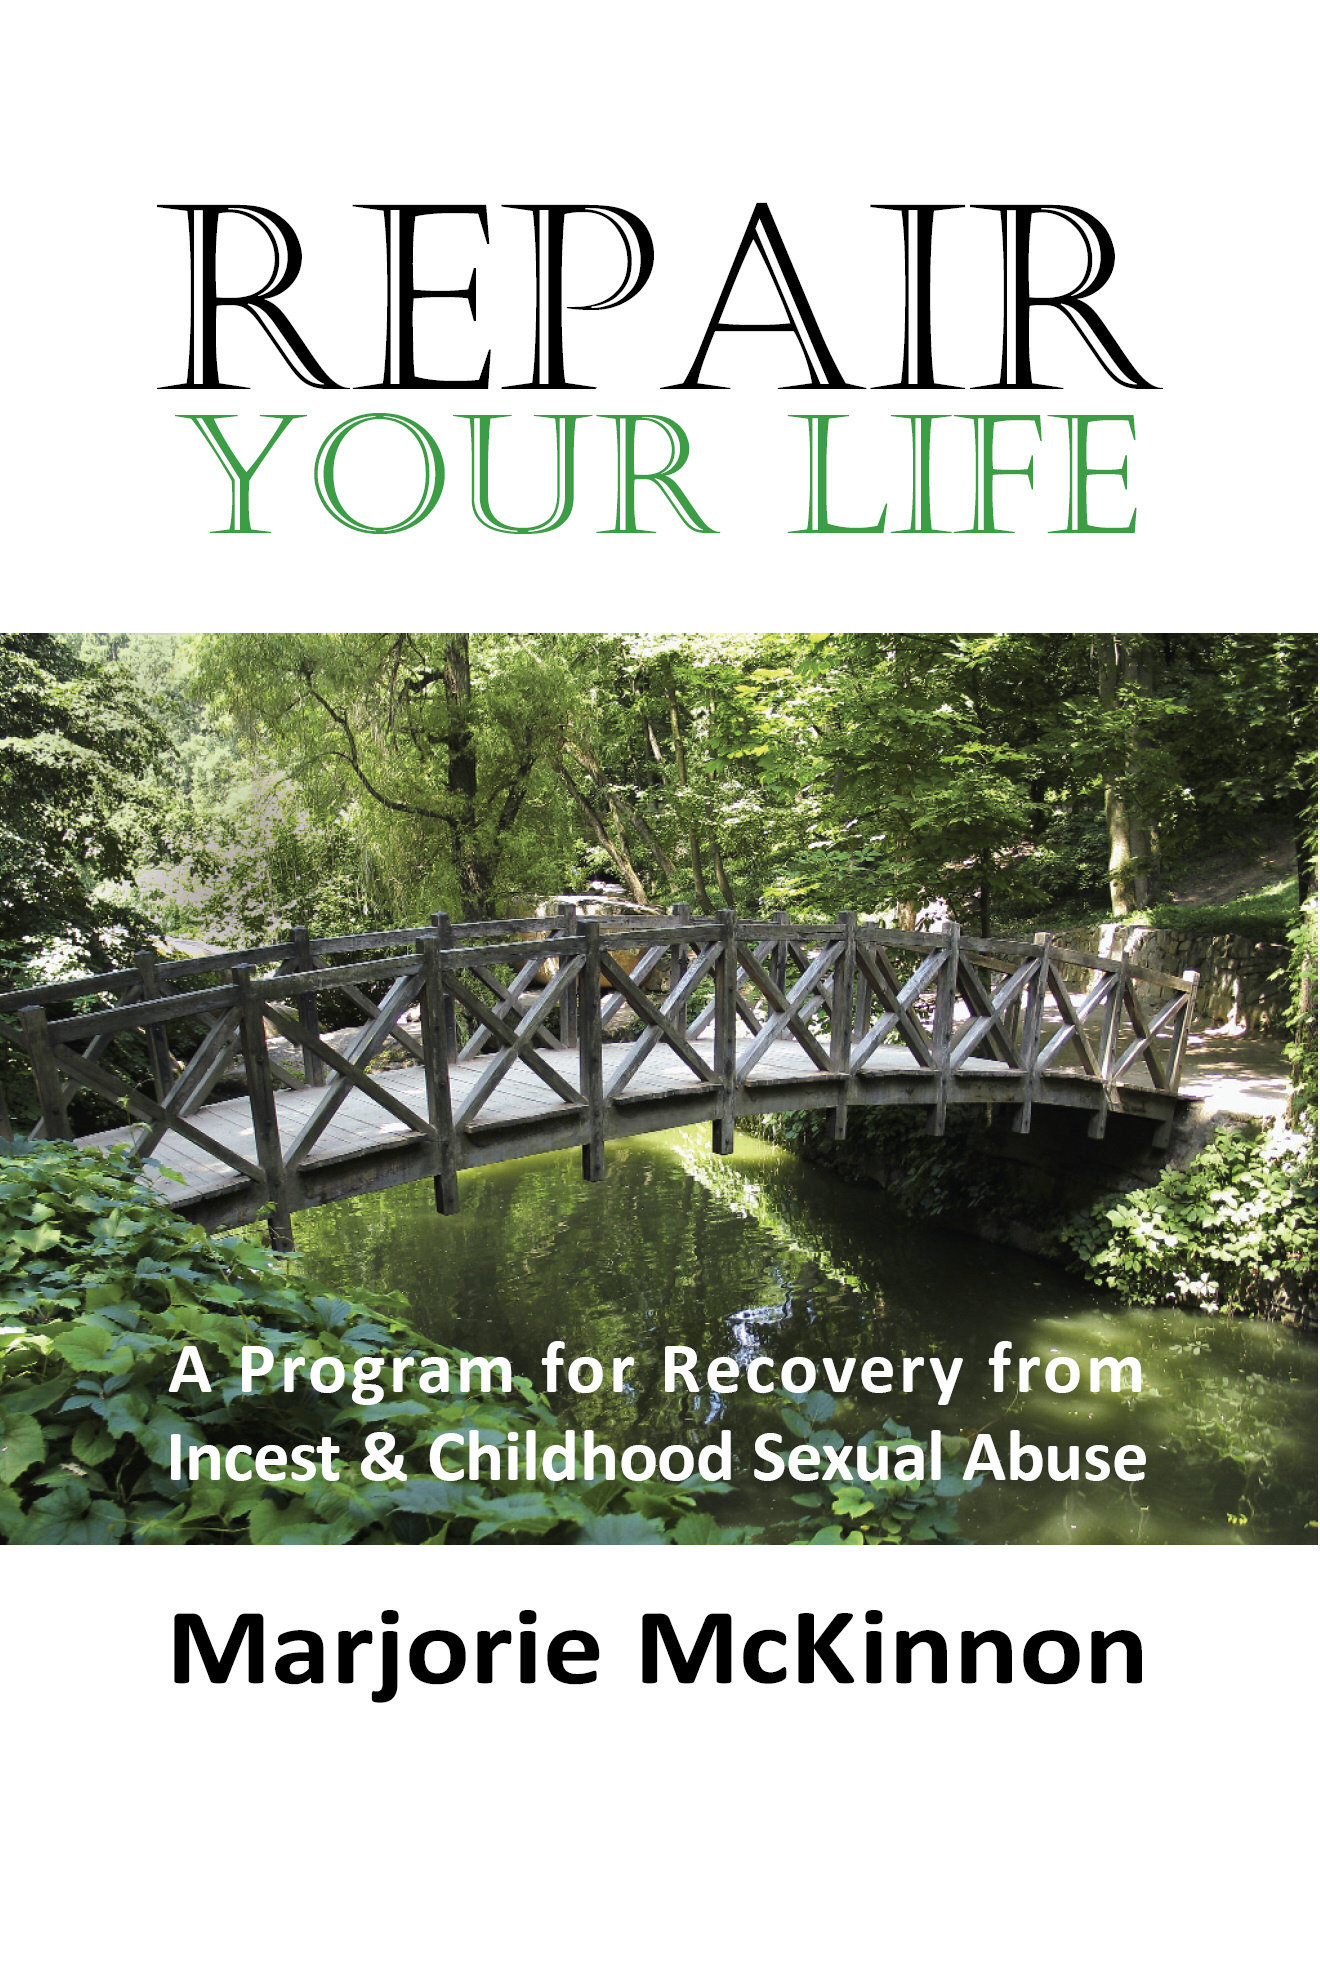 REPAIR Your Life: A Program for Recovery from Incest & Childhood Sexual Abuse 978-1-932690-52-1